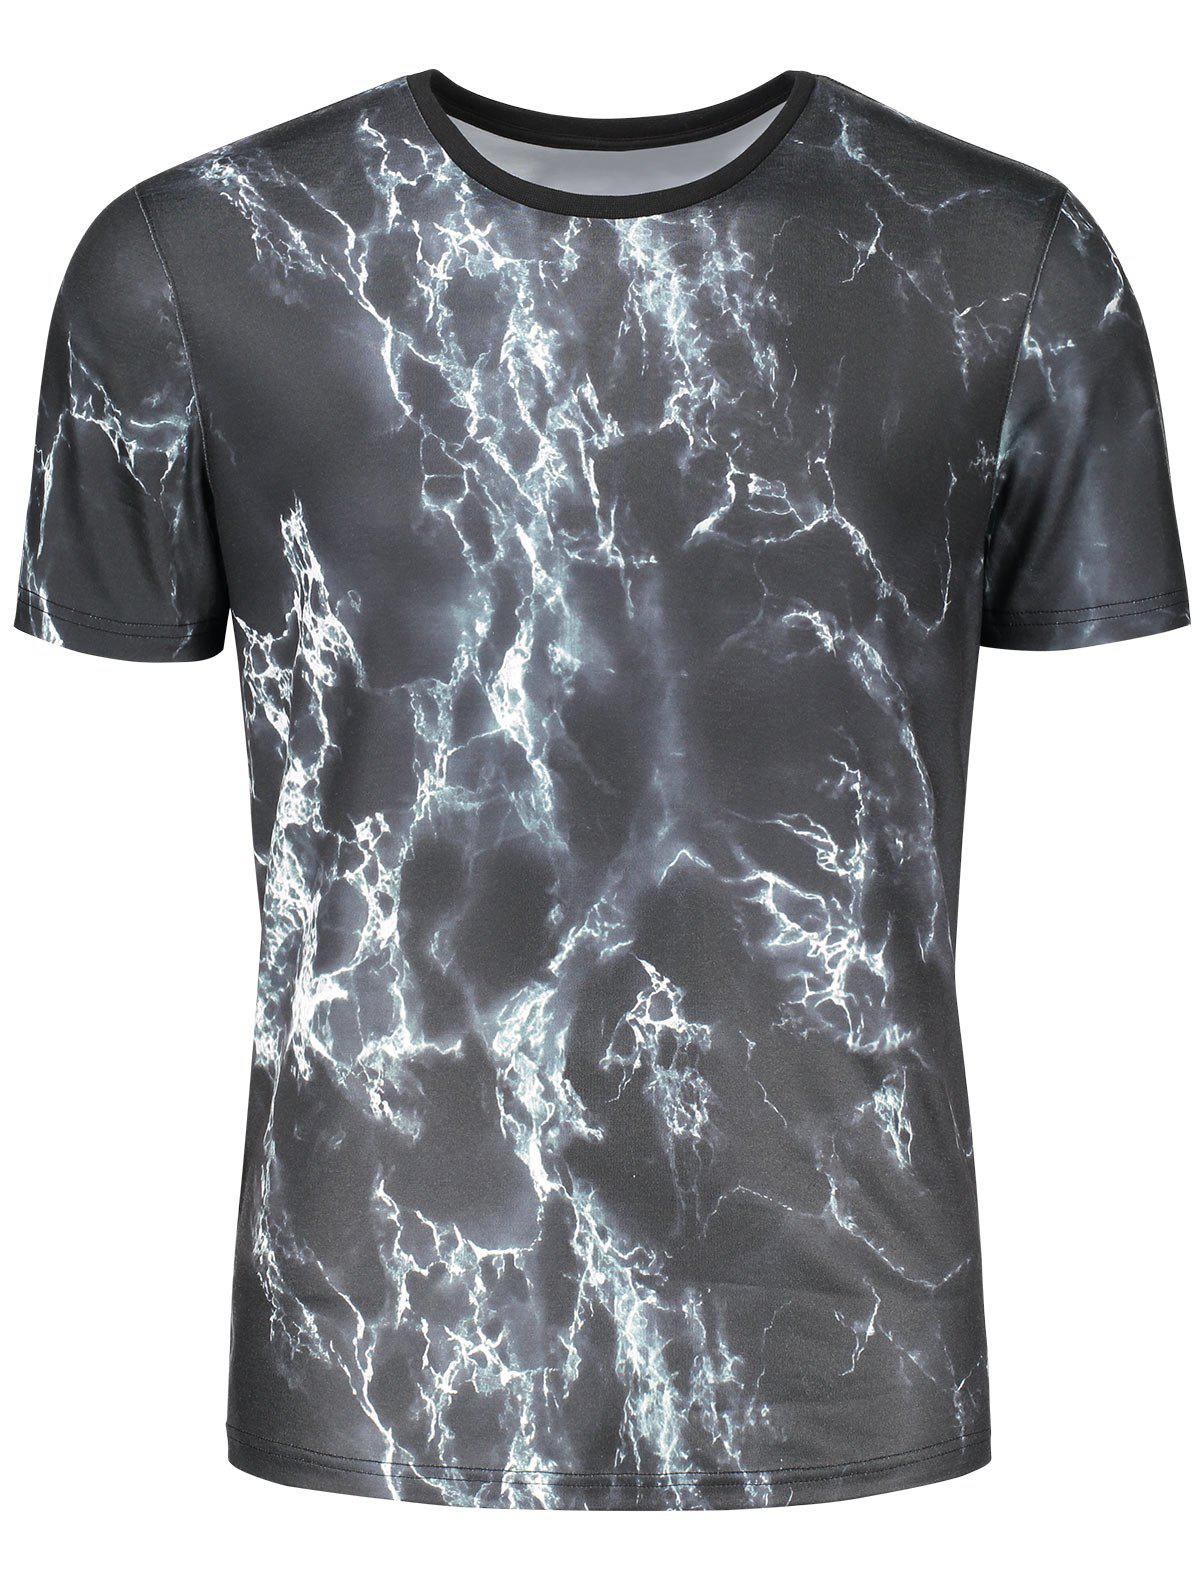 3D Lightning Print Short Sleeve T-shirt - COLORMIX L